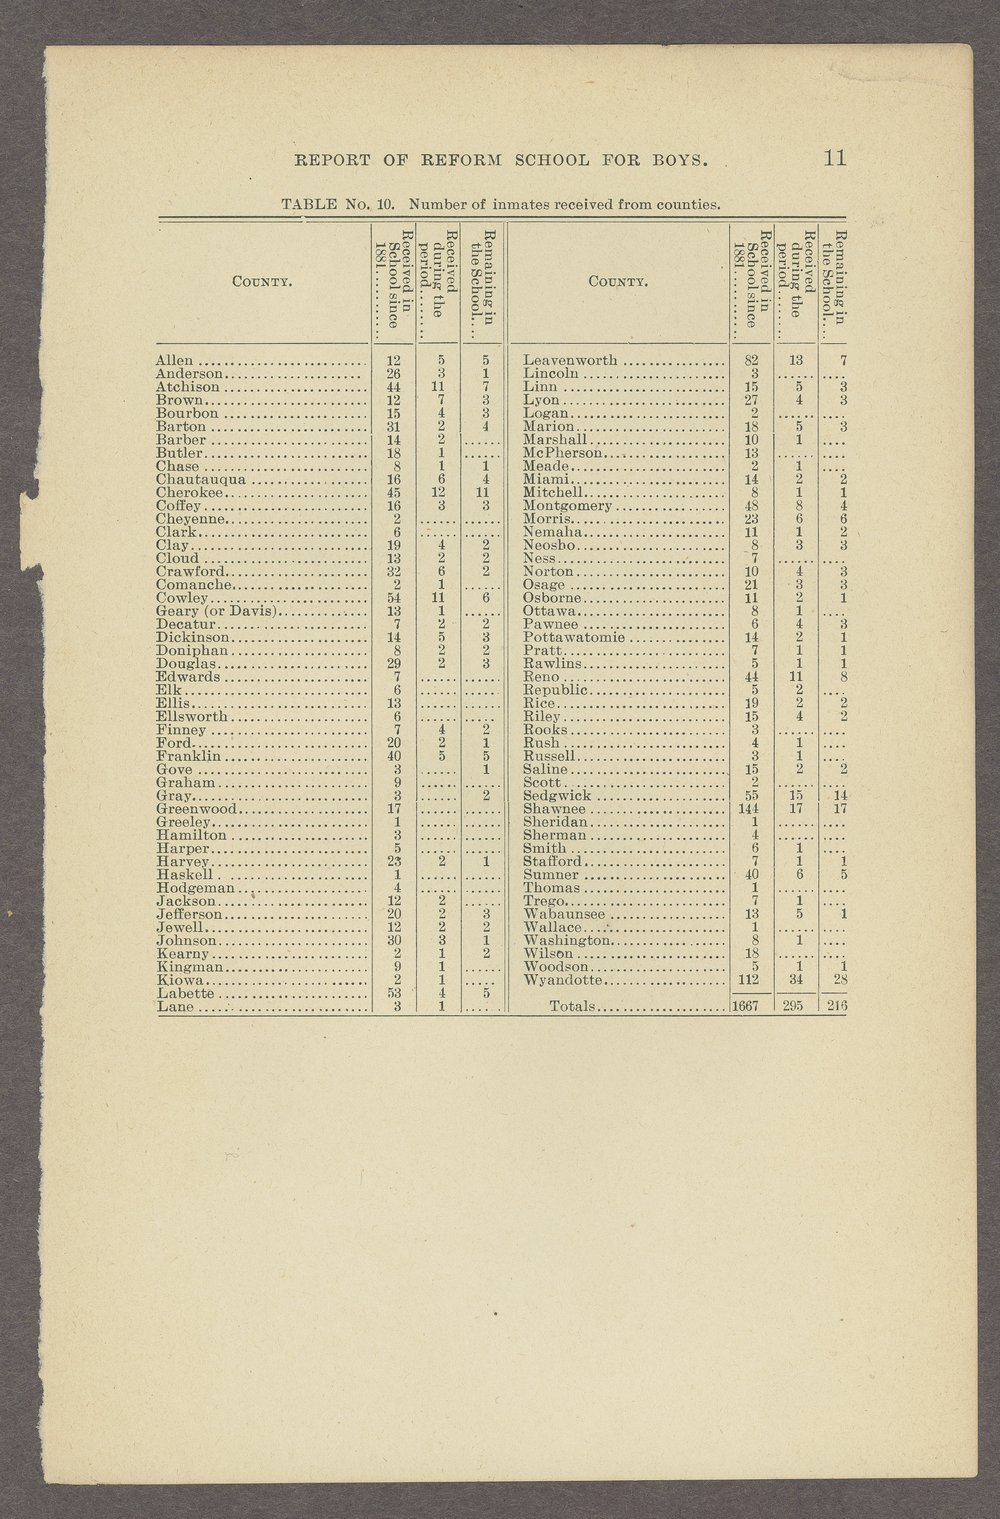 Biennial report of the State Reform School,1898 - 11